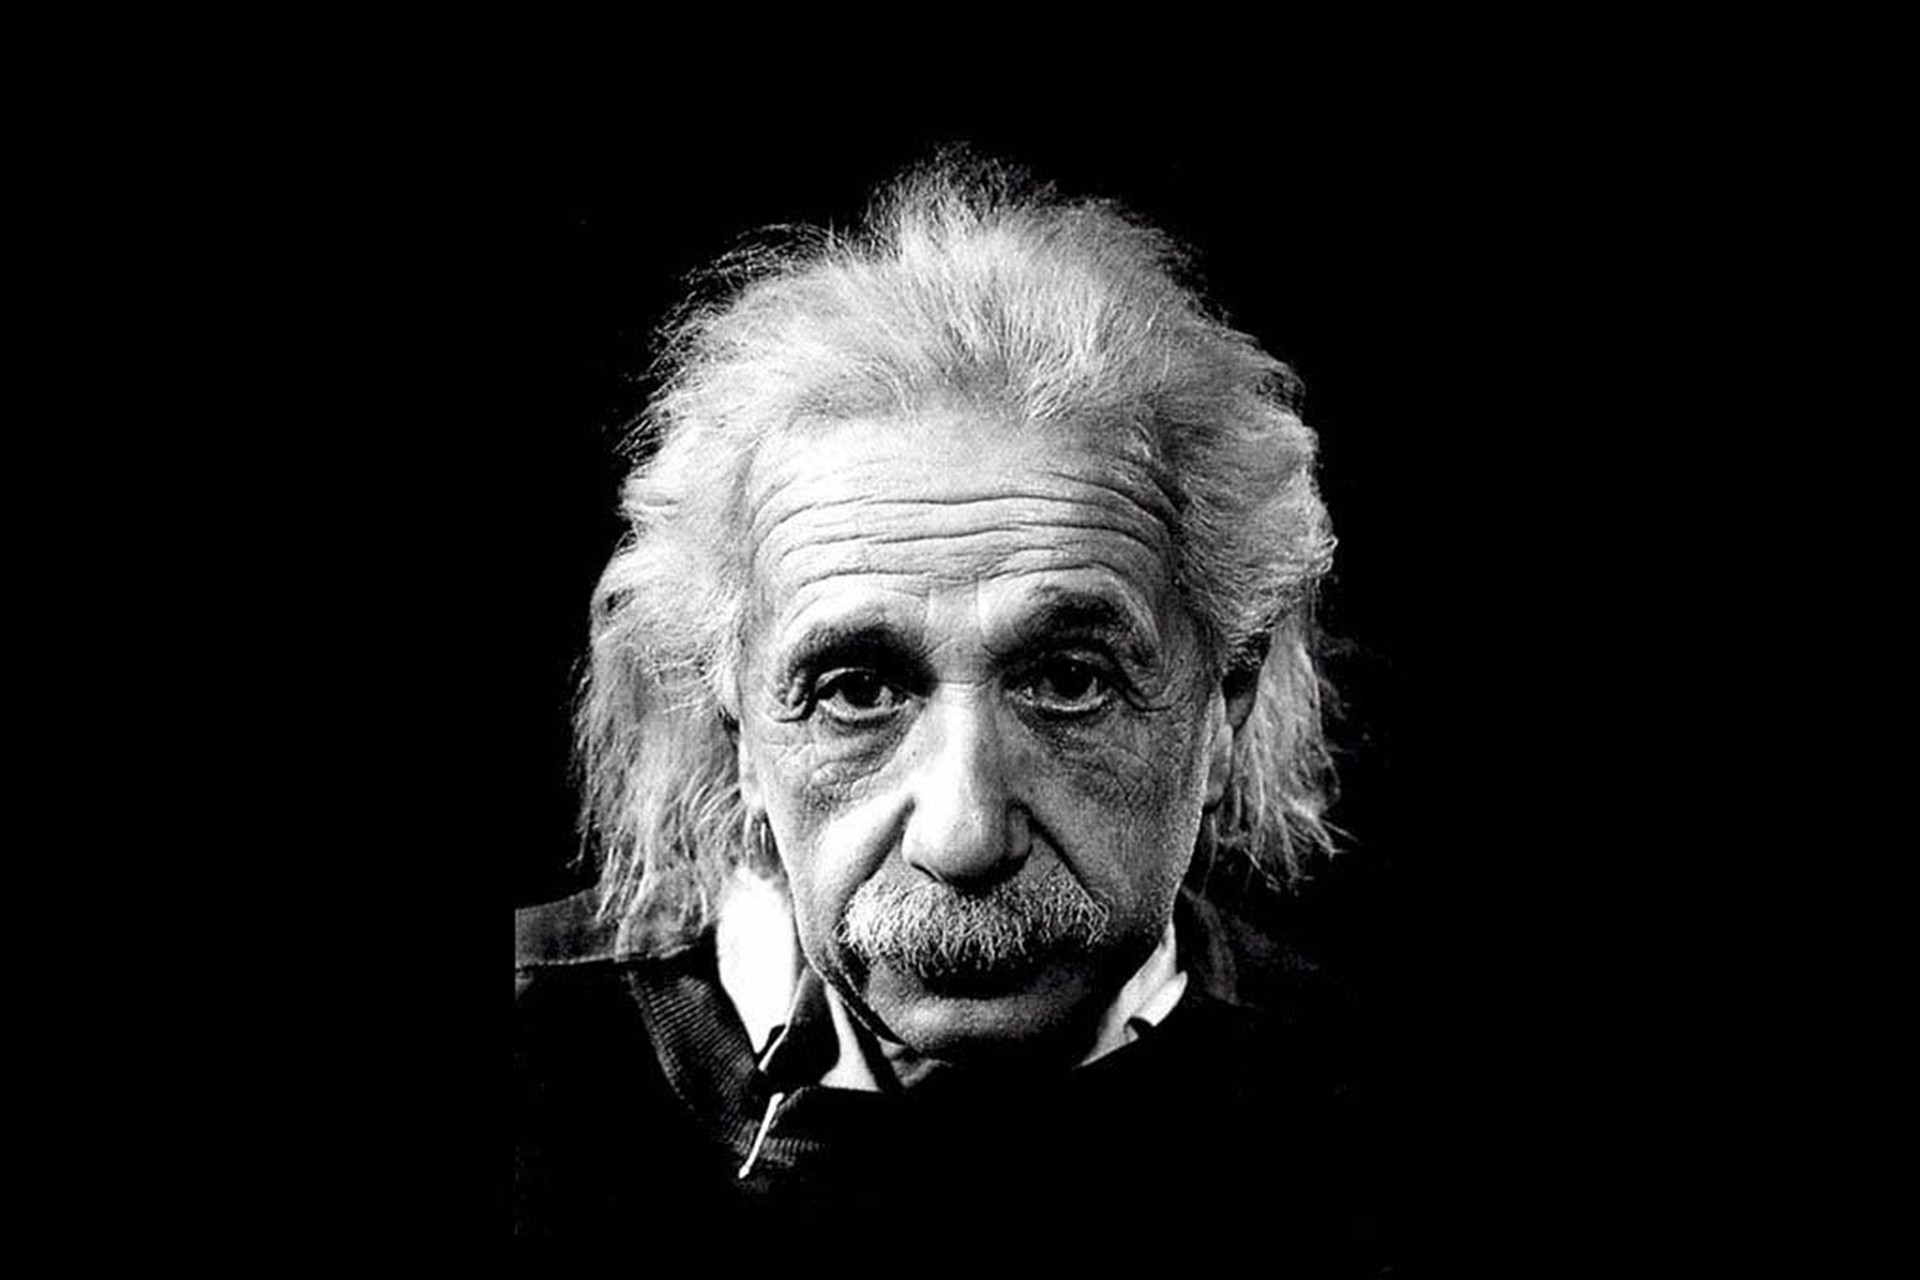 Einstein Wallpaper for PC | Full HD Pictures